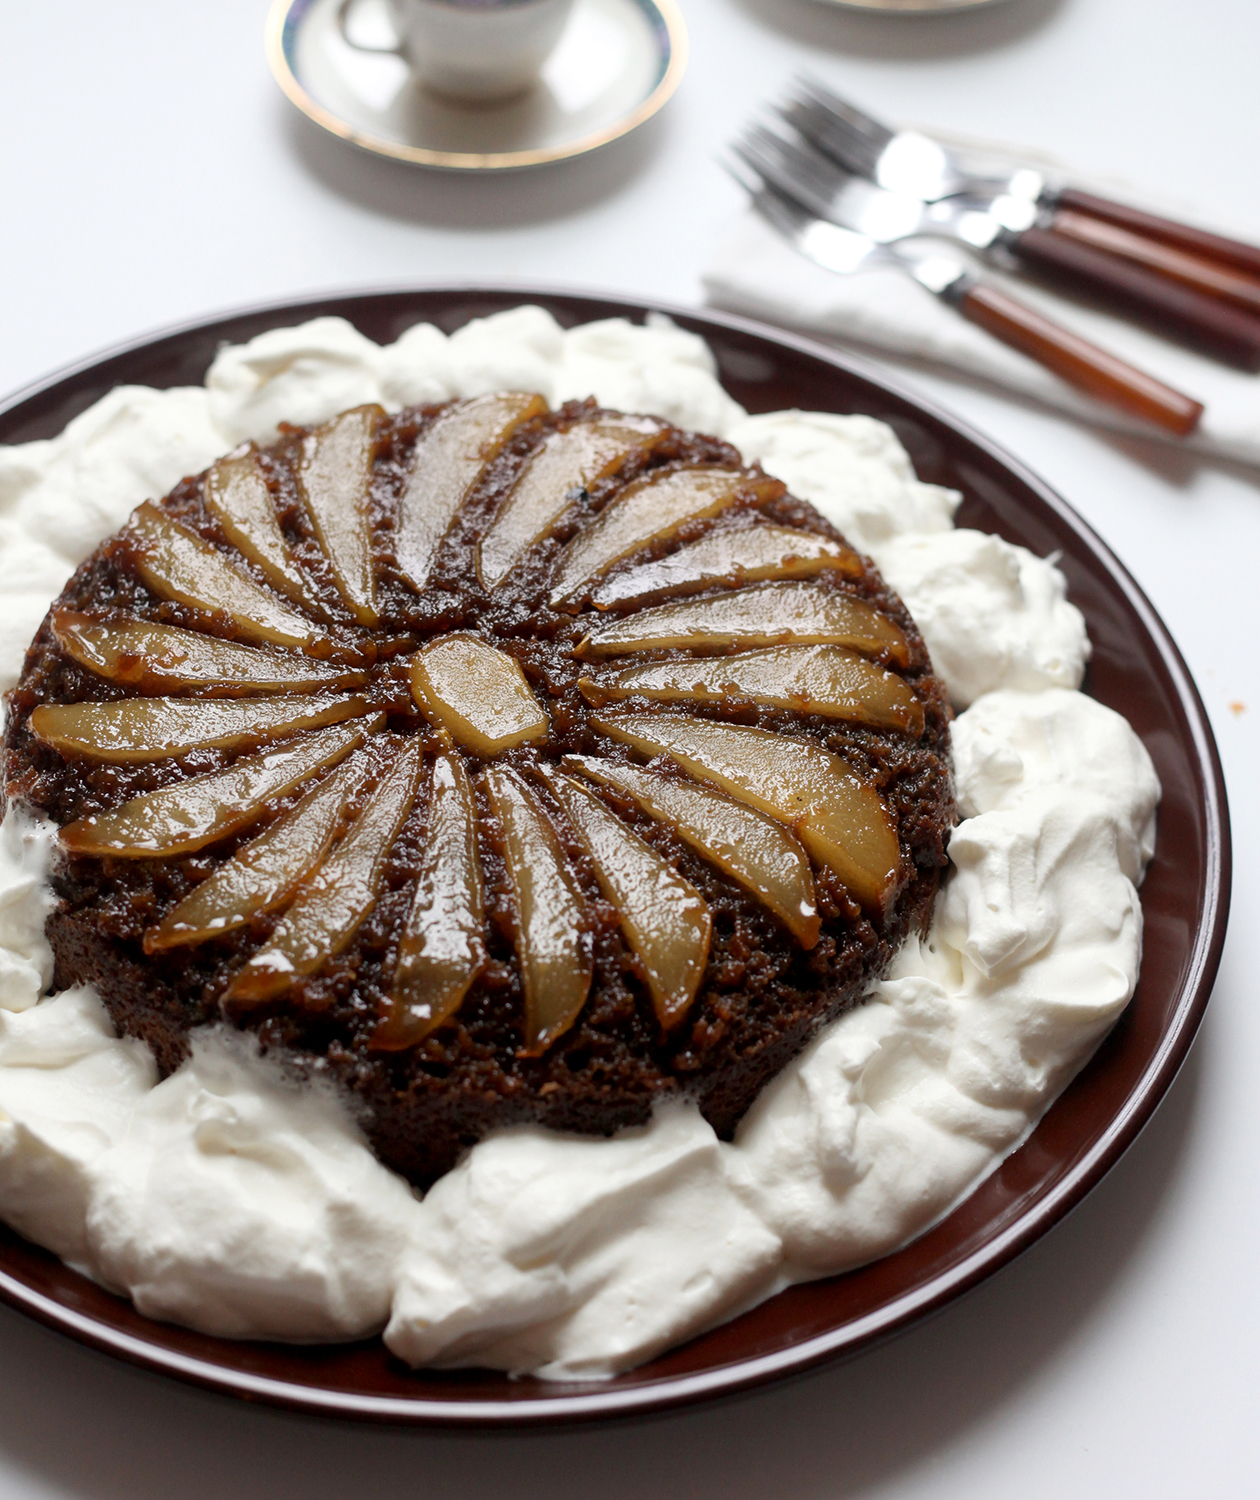 Spiced Pear Skillet Upside Down Cake